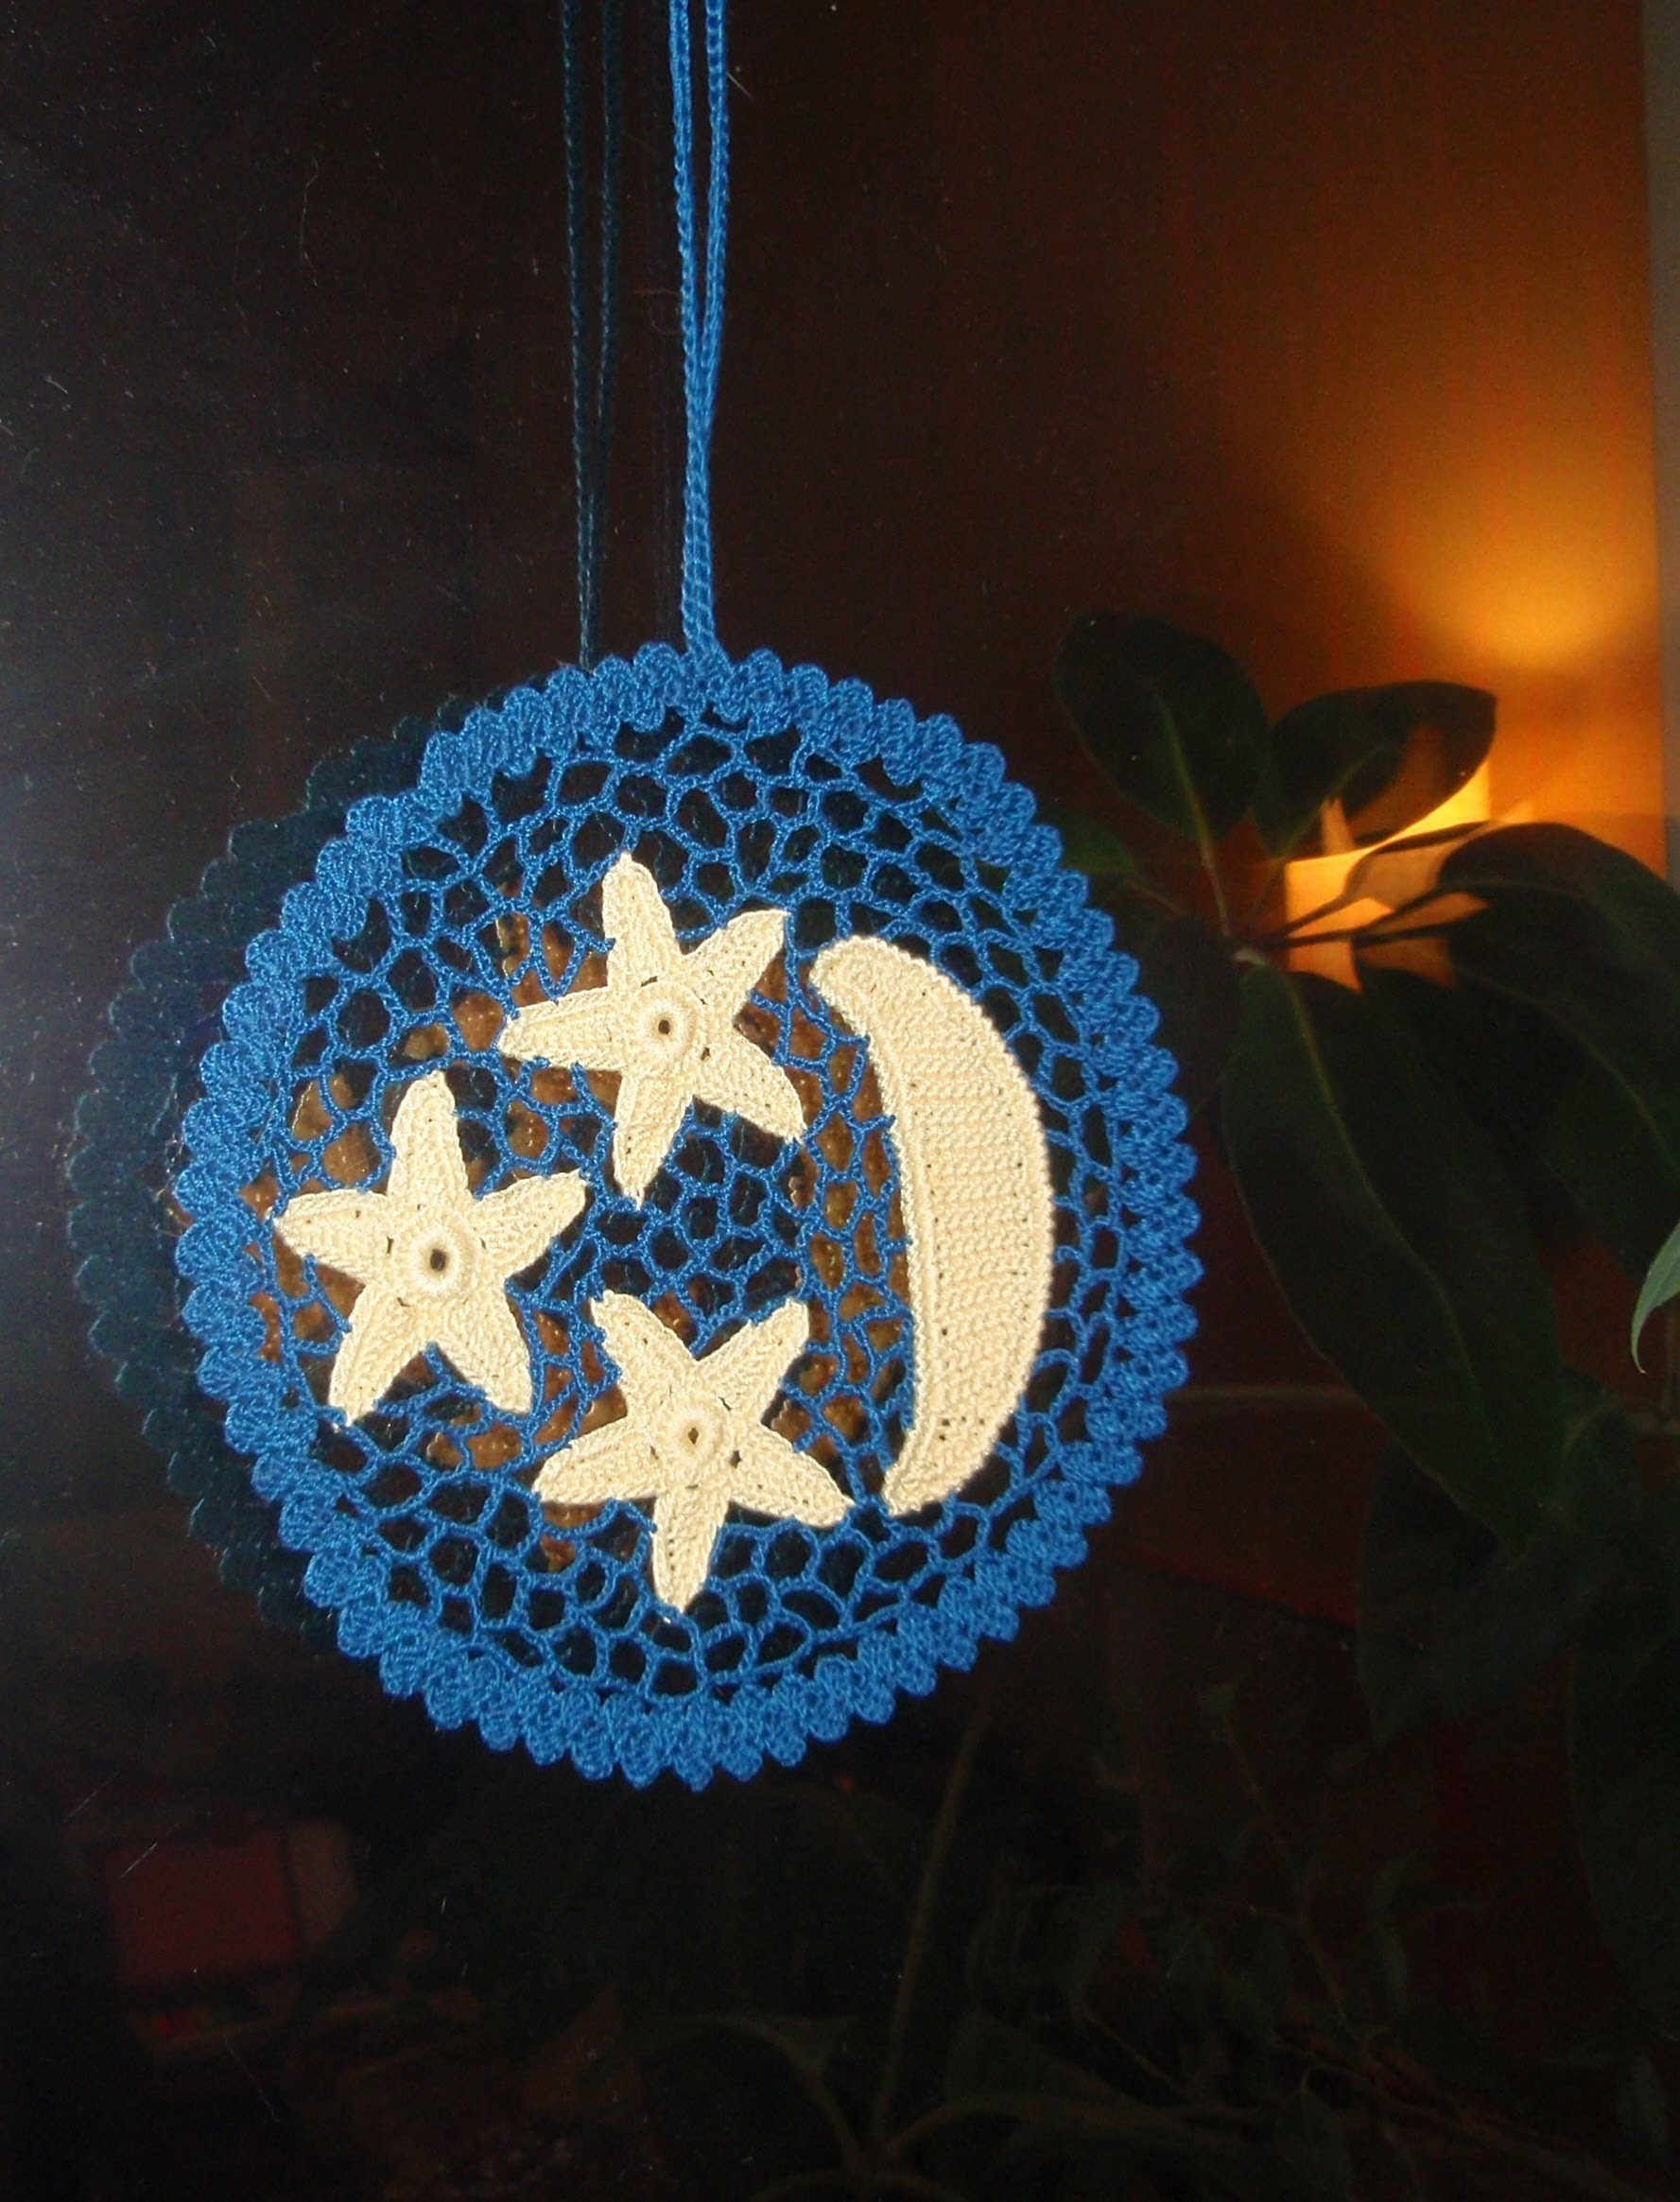 Ирландское кружево. Звездочка.How to Crochet a Star.